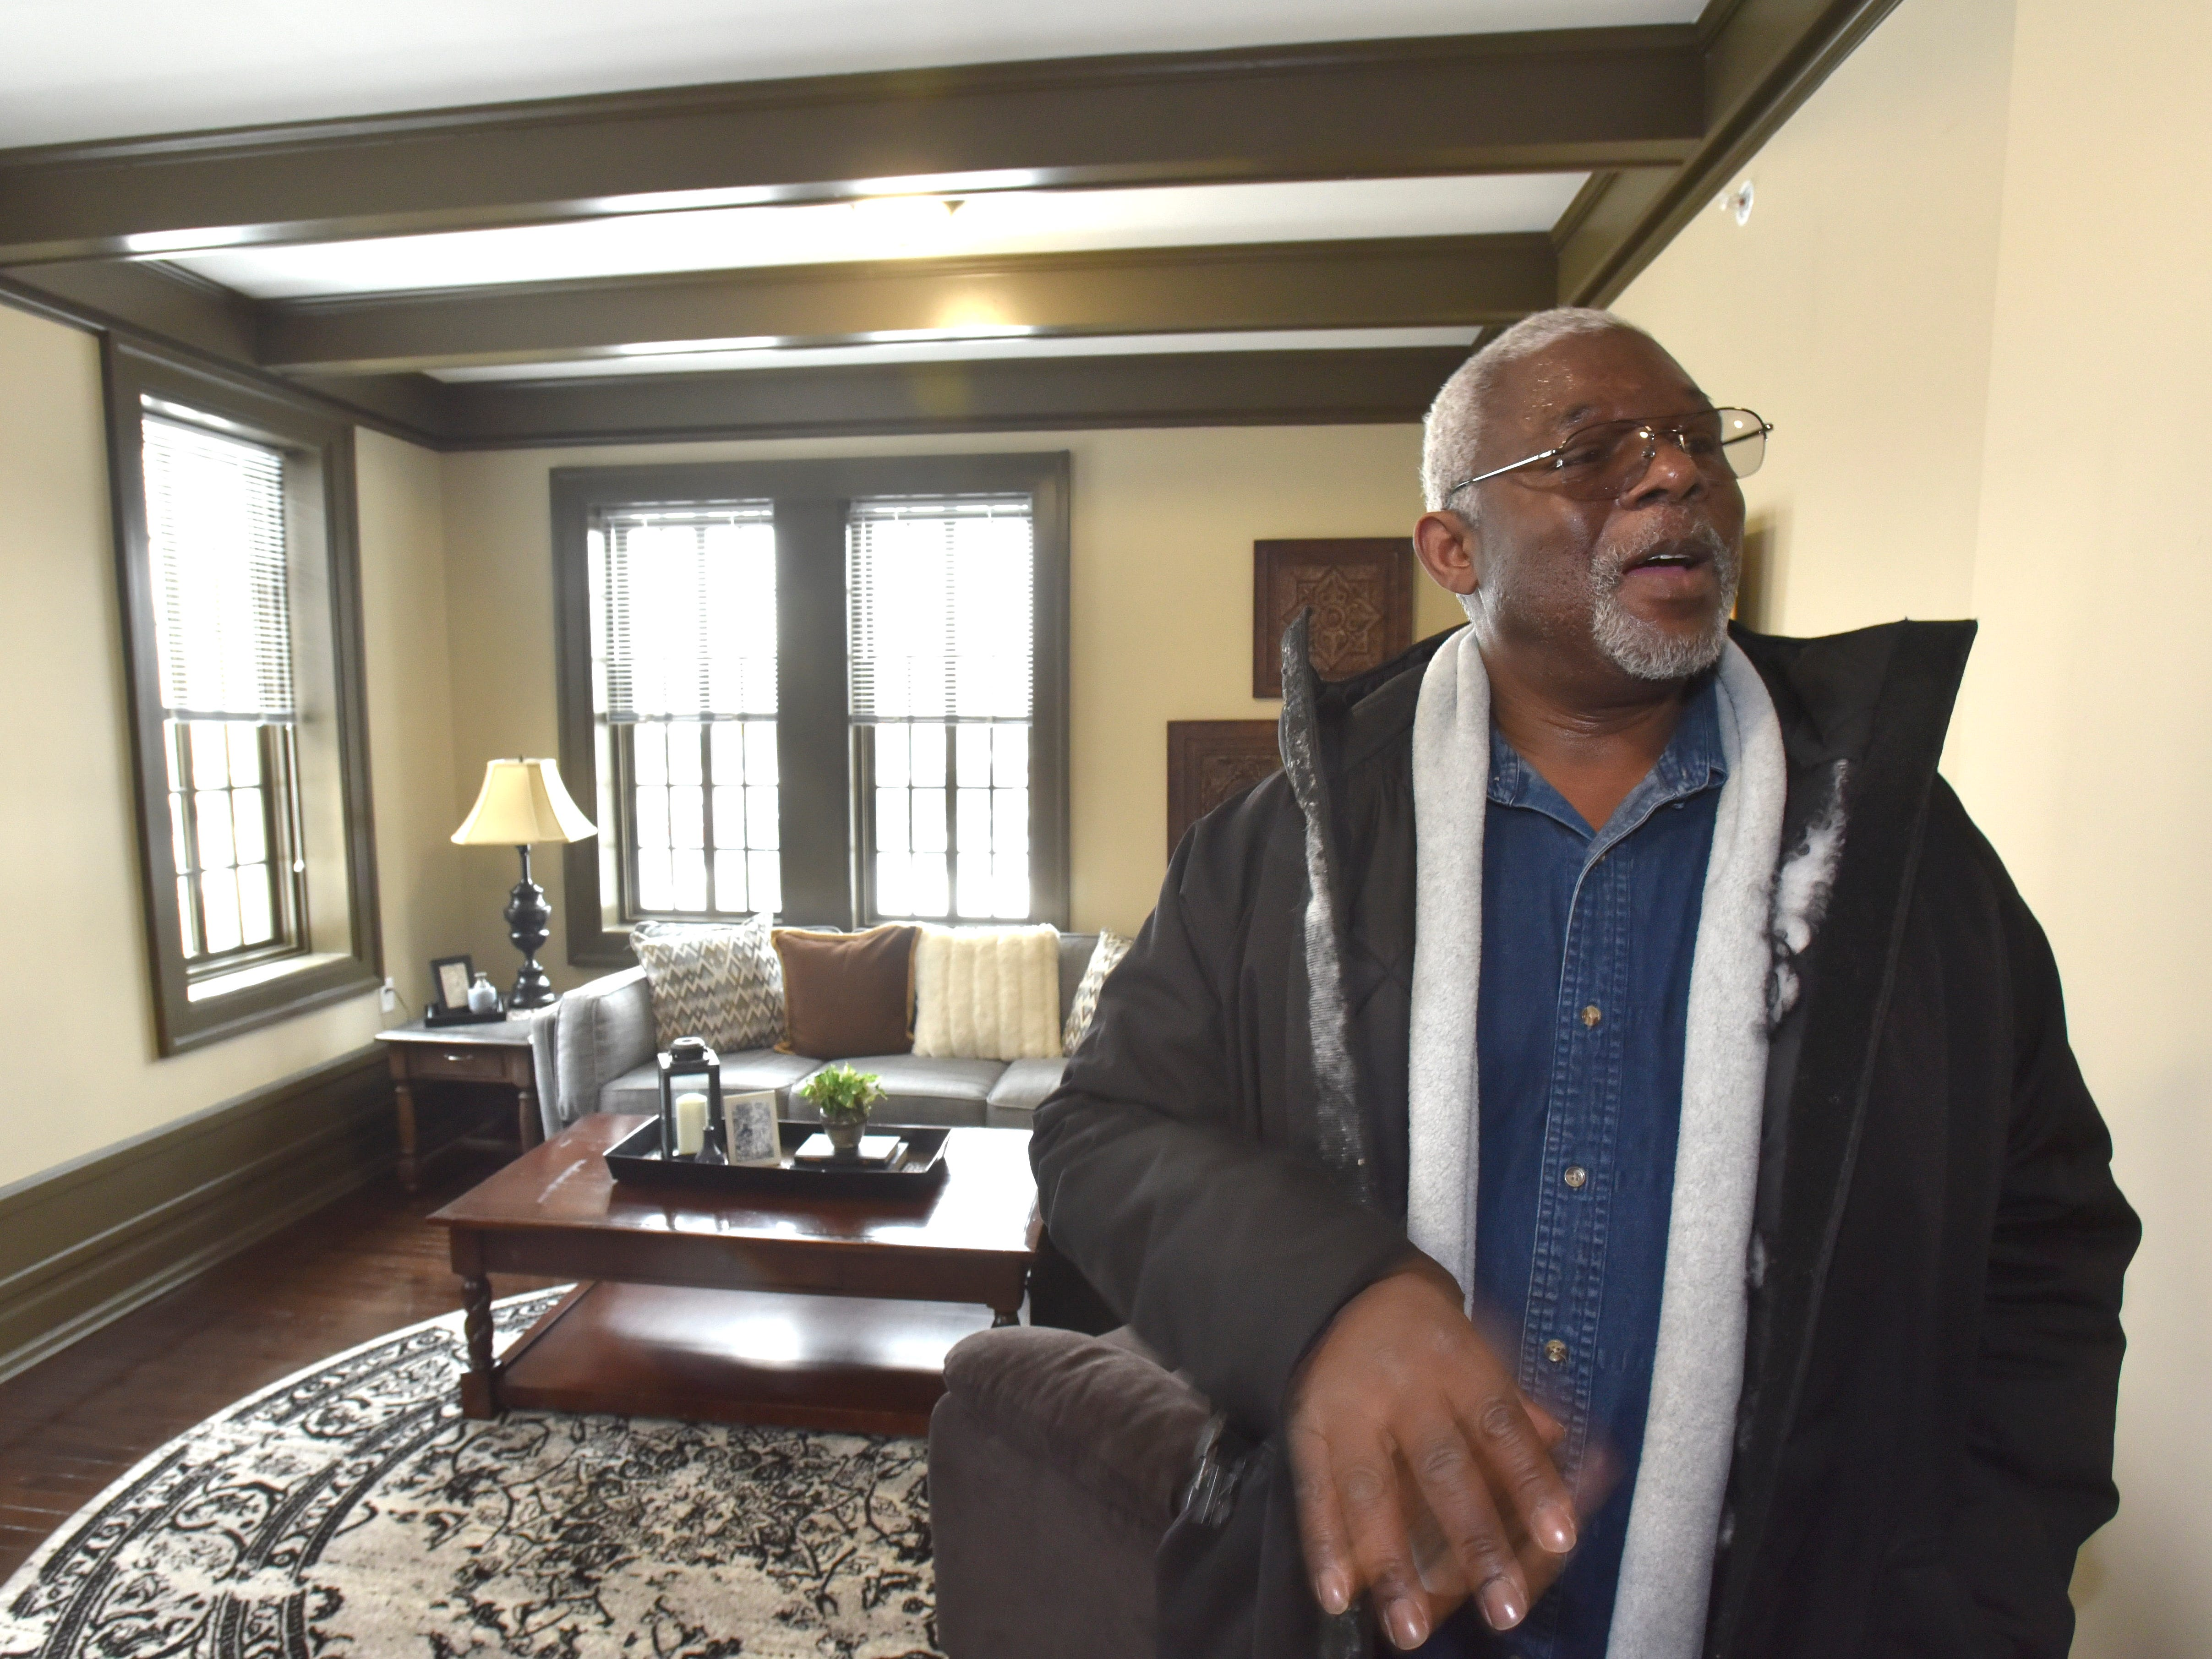 Retired U.S. Army truck driver Nathaniel Smith talks to a journalist in a finished apartment. He will move into another apartment in the future.